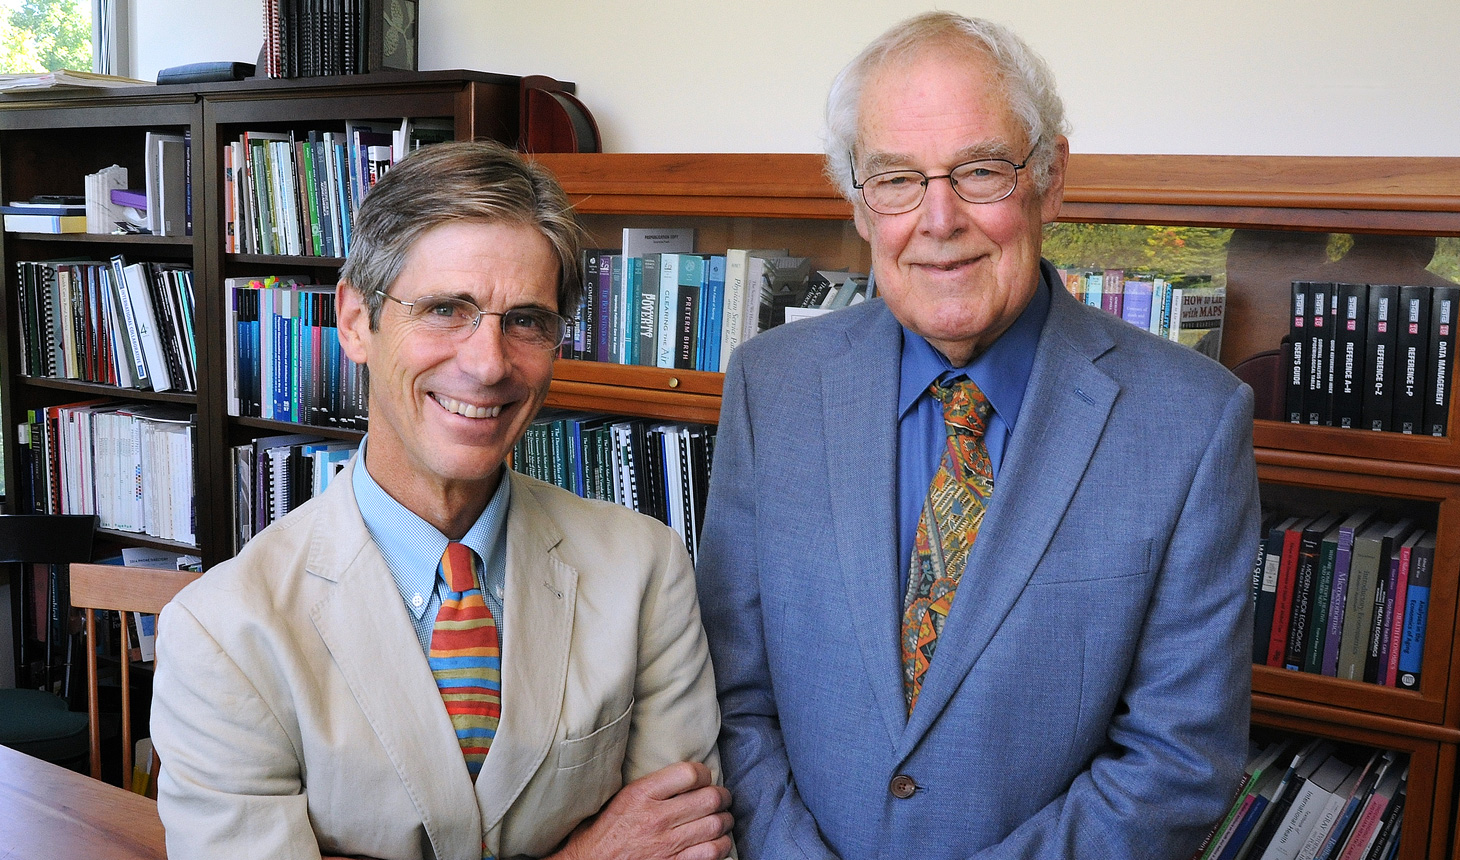 Elliott Fisher (l) and John Wennberg (r). Fisher has been named the inaugural holder of the John E. Wennberg Distinguished Professorship at Dartmouth's Geisel School of Medicine.